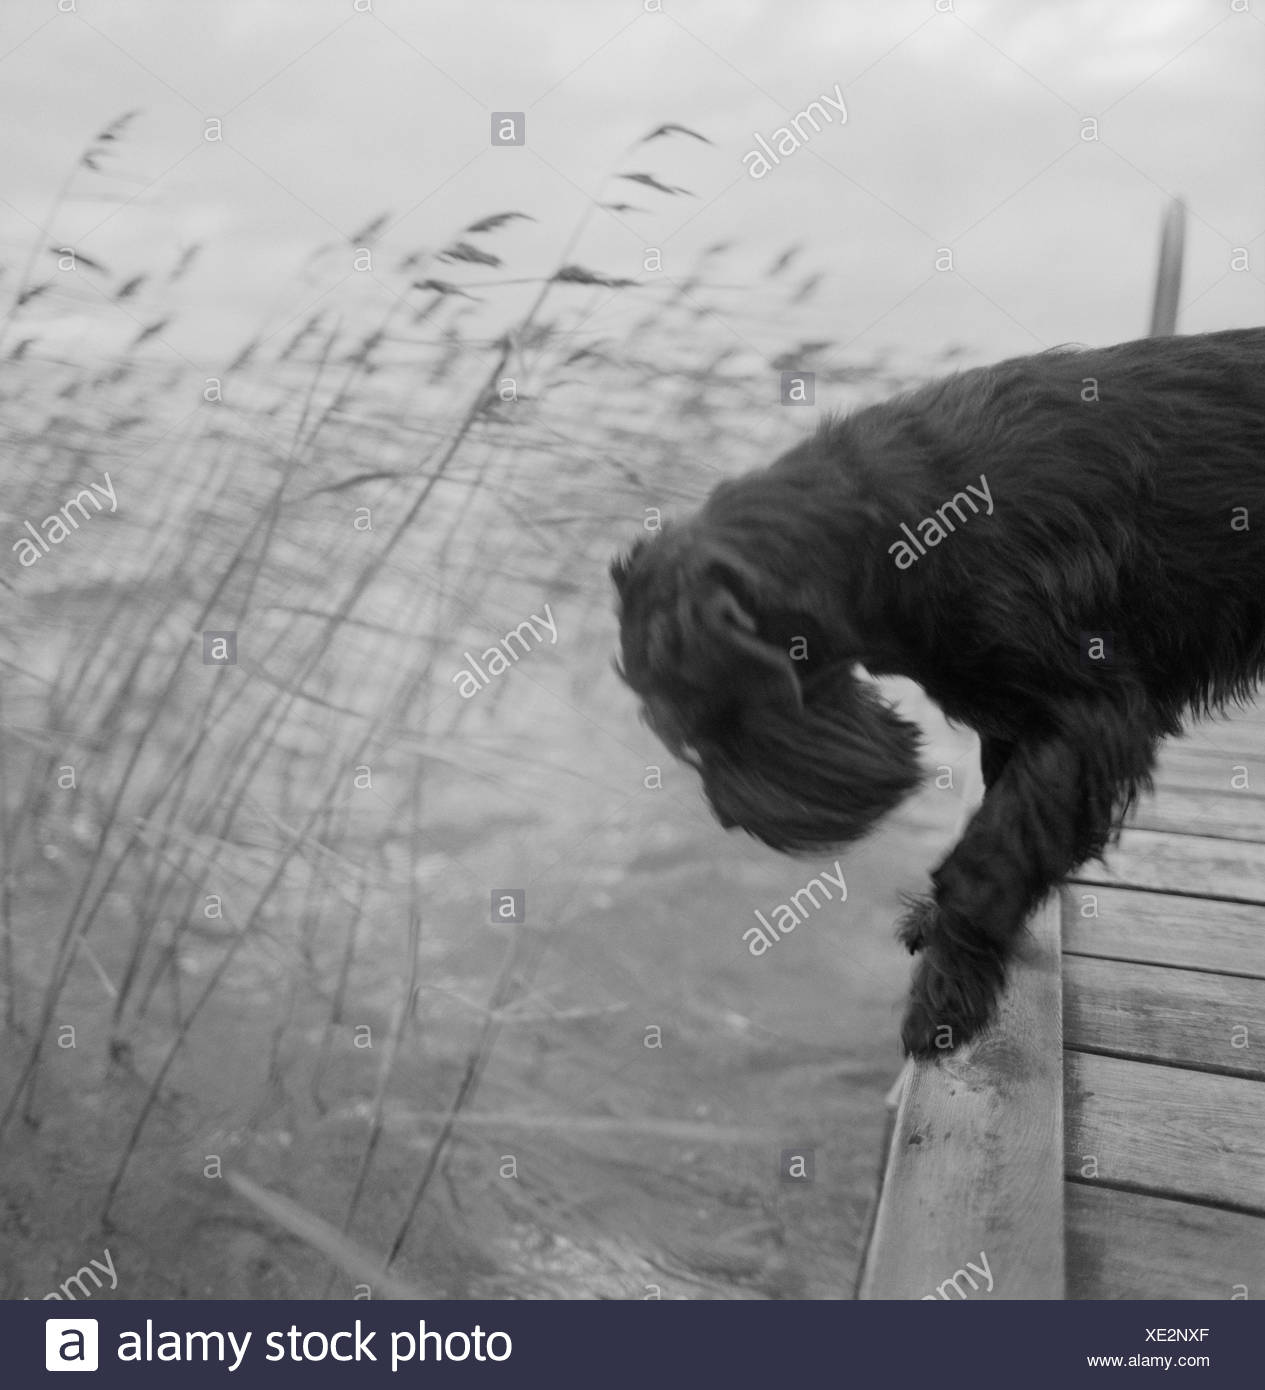 Dog peering into water from jetty Stock Photo